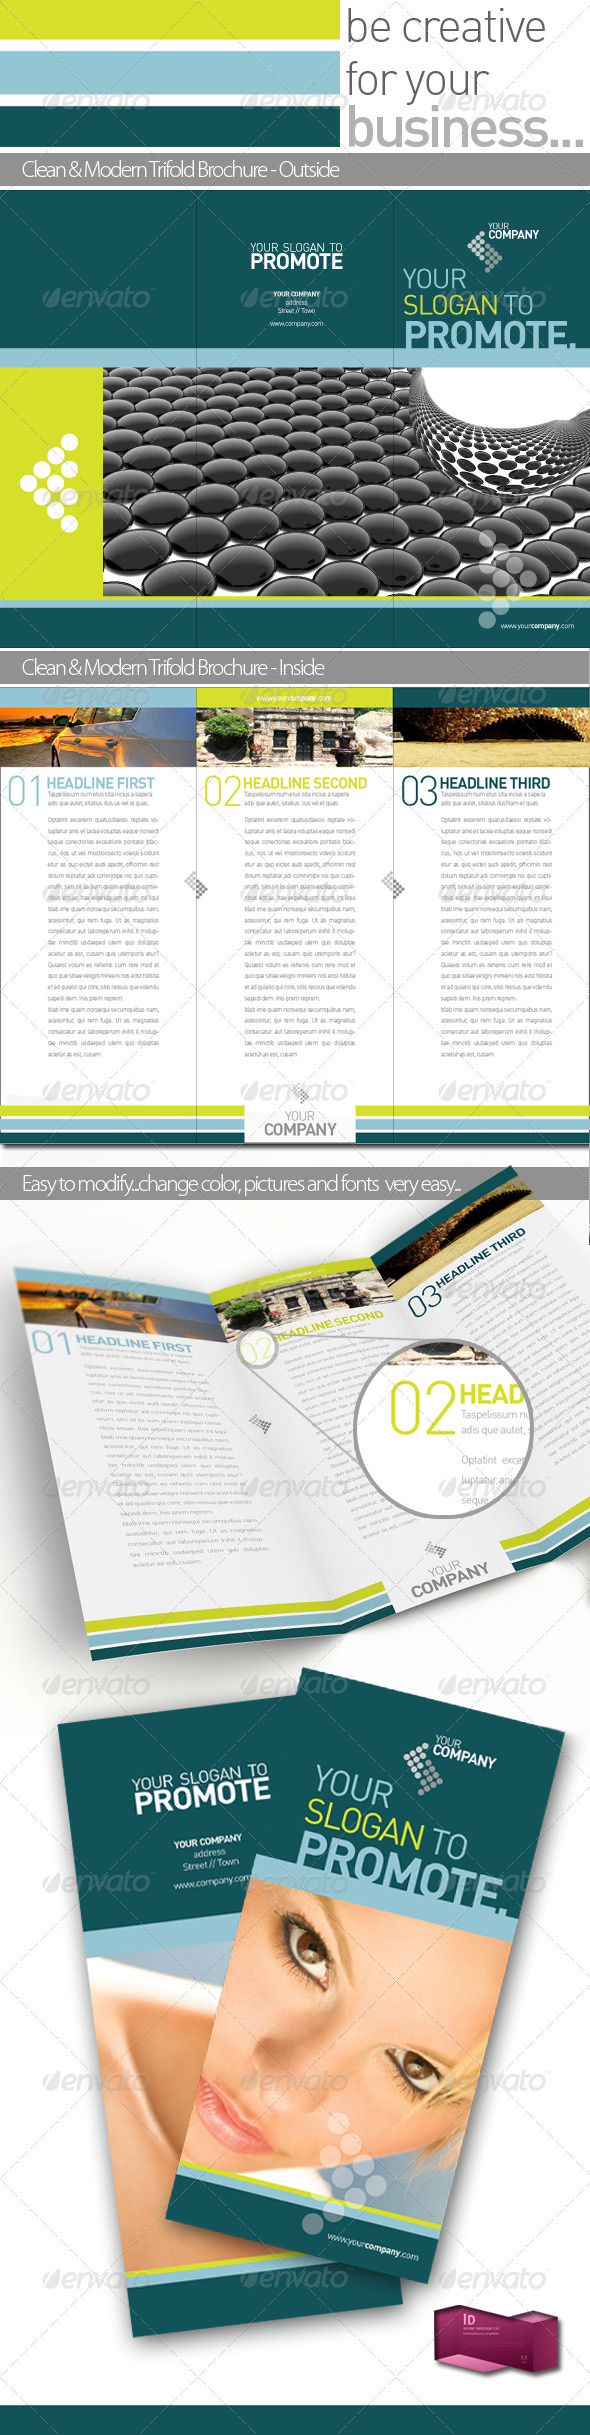 Company Folder Professional Brochure Template   - Corporate Brochures